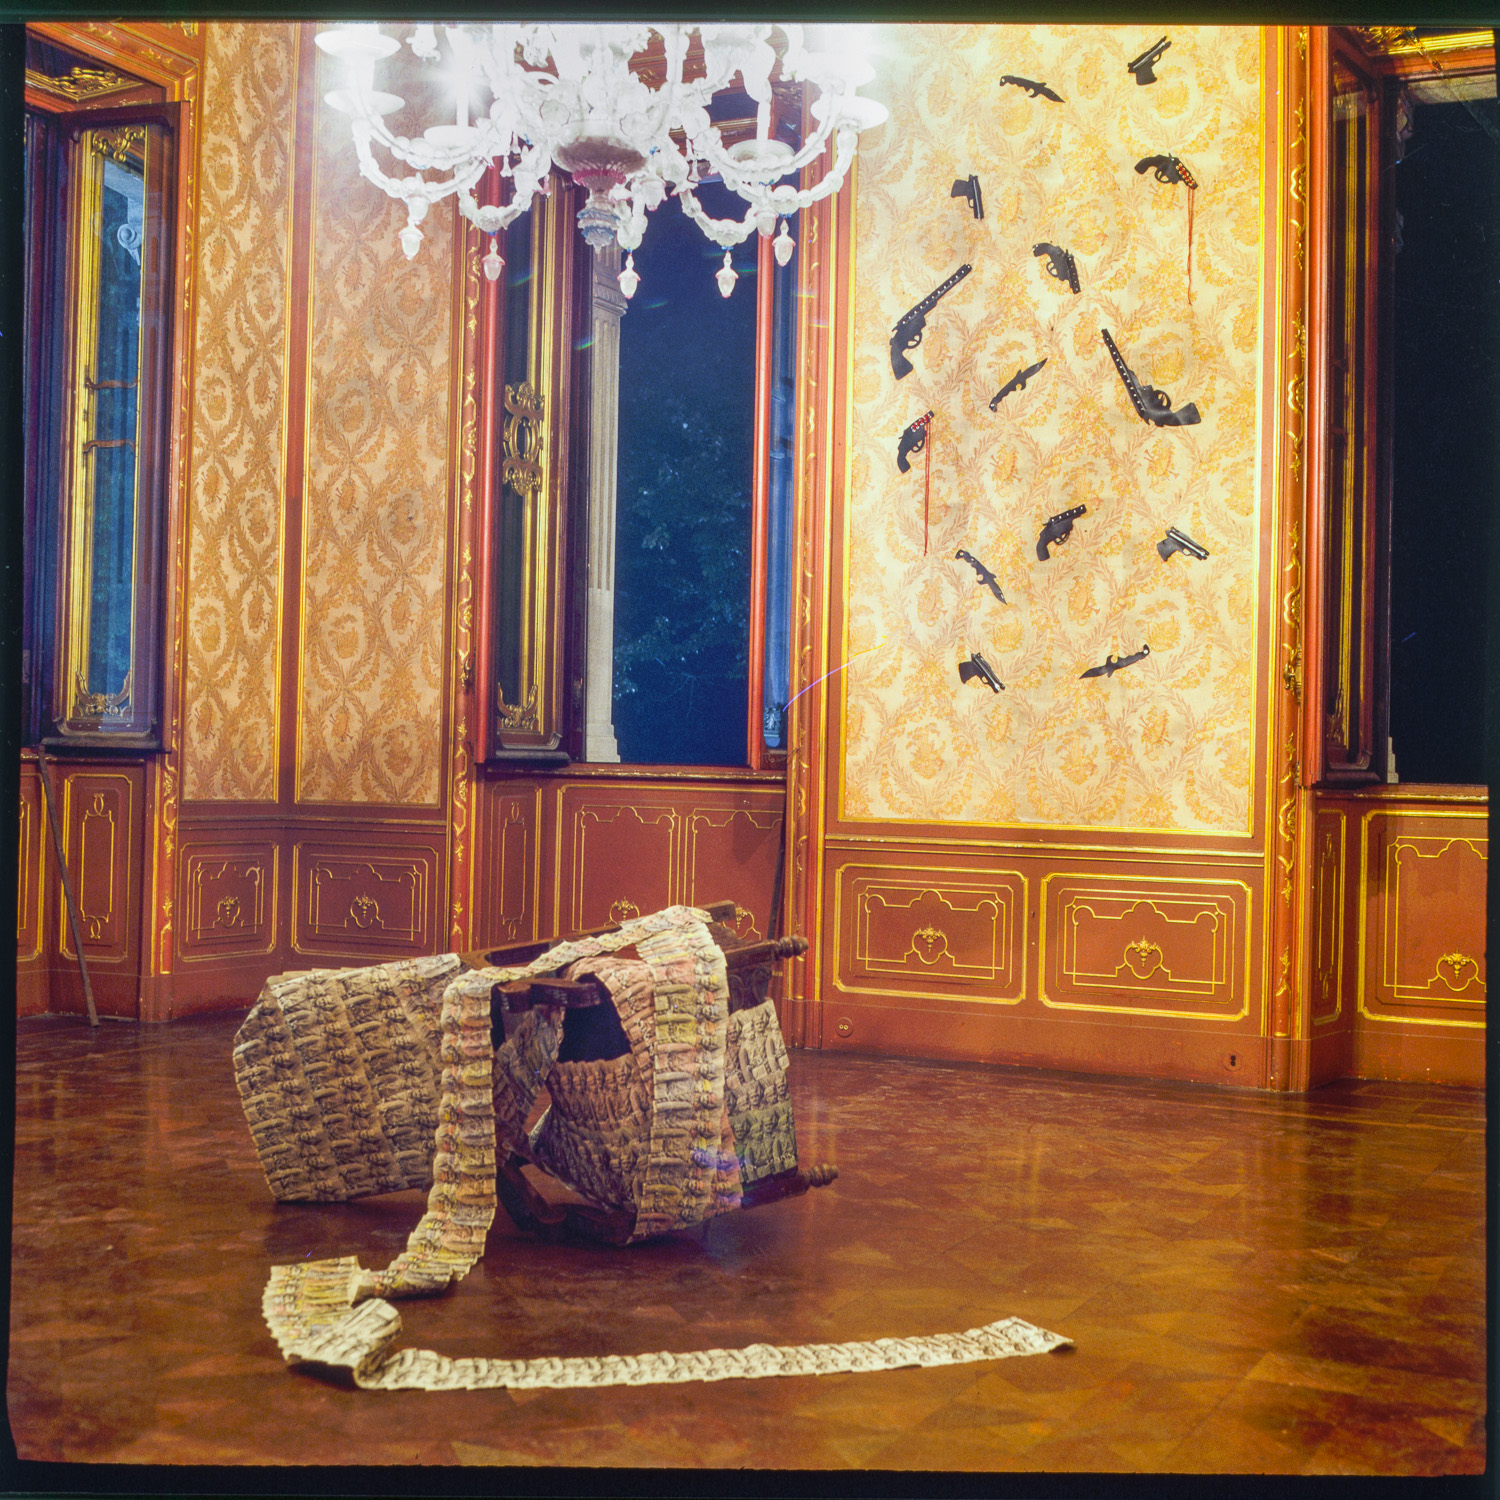 """STANZE"",Villa Chiari (I) 1995  Installation with chair, paper, leatherweapons on wall"